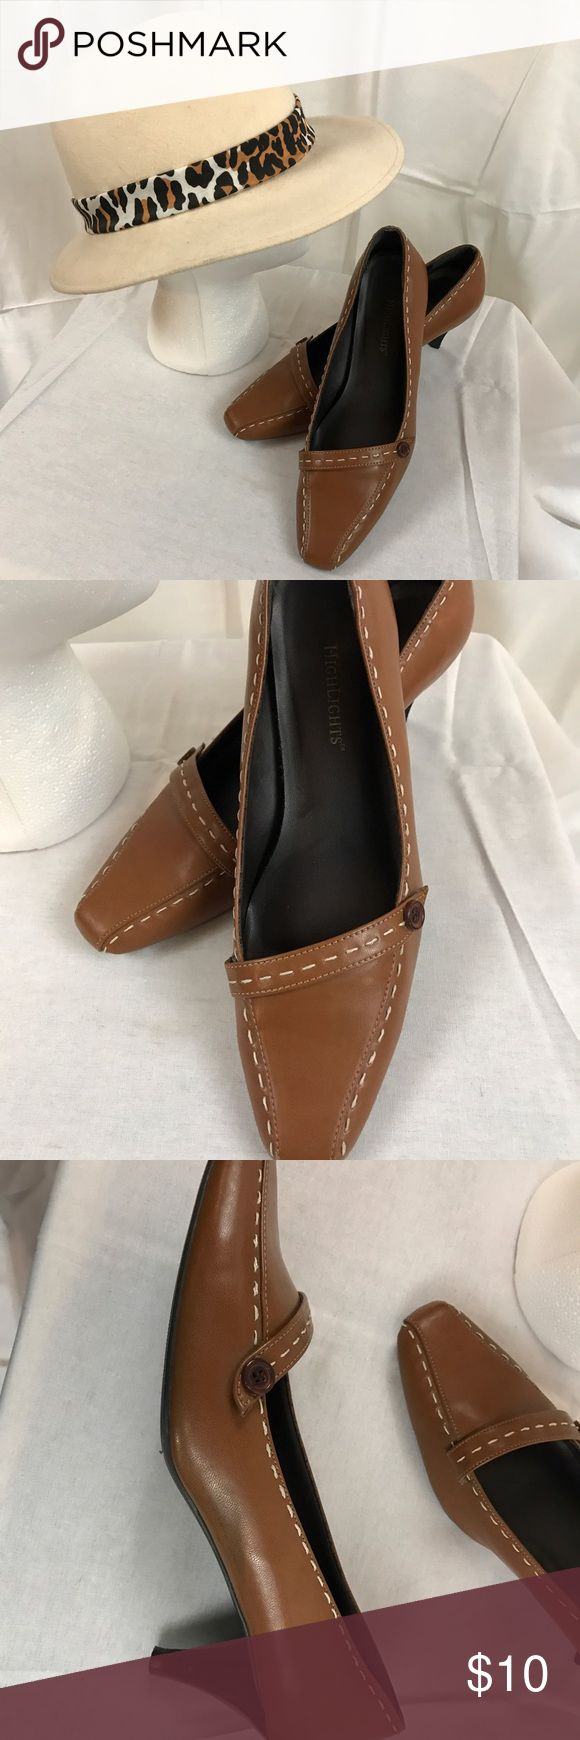 "Highlights Size 7W Camel Pumps With Stitching If you need a nice pair of career Pumps 👠 that compliment this is a great pair for your wardrobe. Size 7W and a 2"" heel these lightly used shoes are a good buy. highlights Shoes Heels"